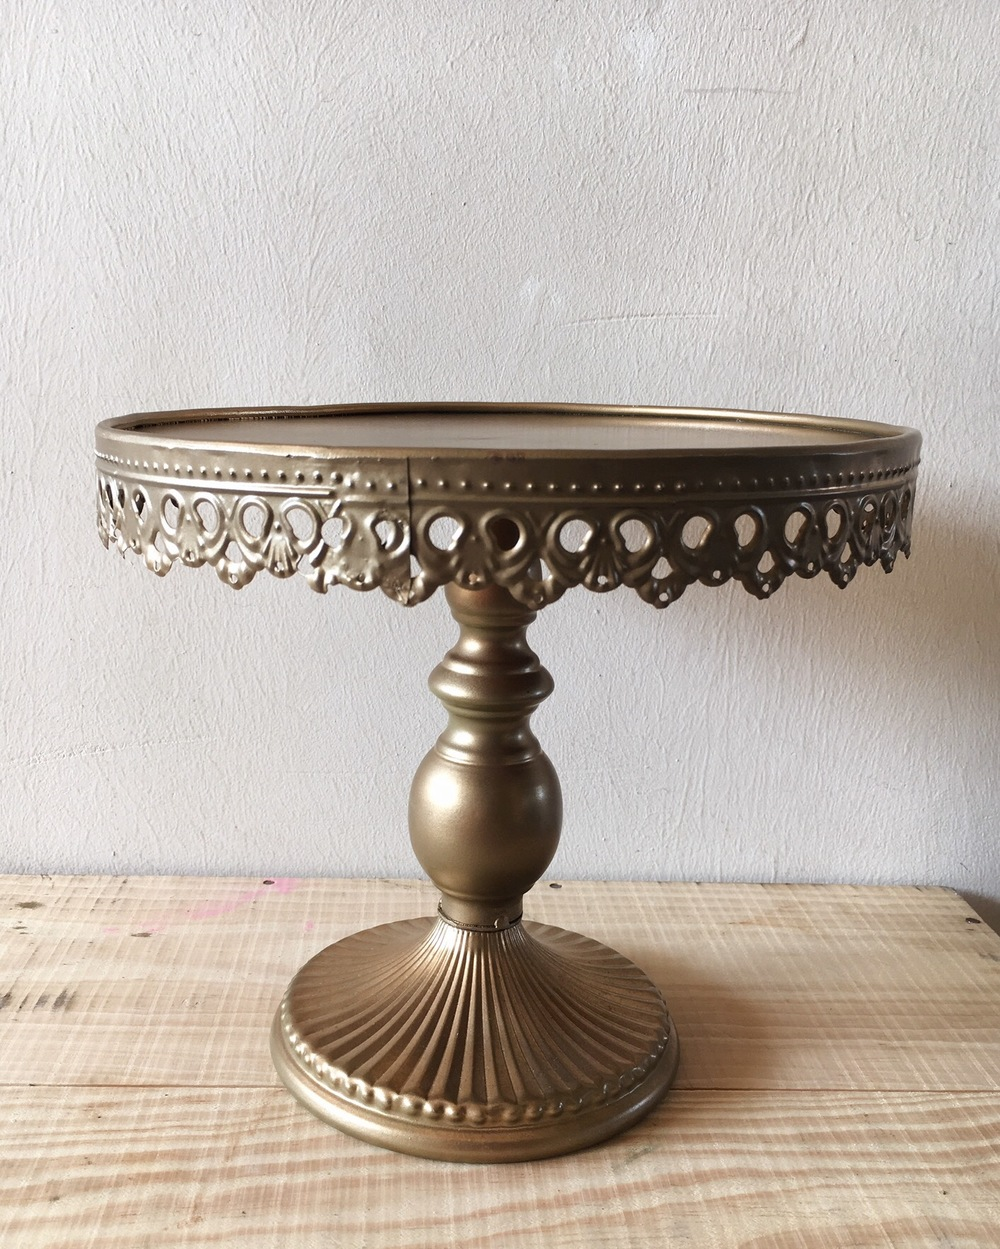 dessert table cake stand gold 2.JPG